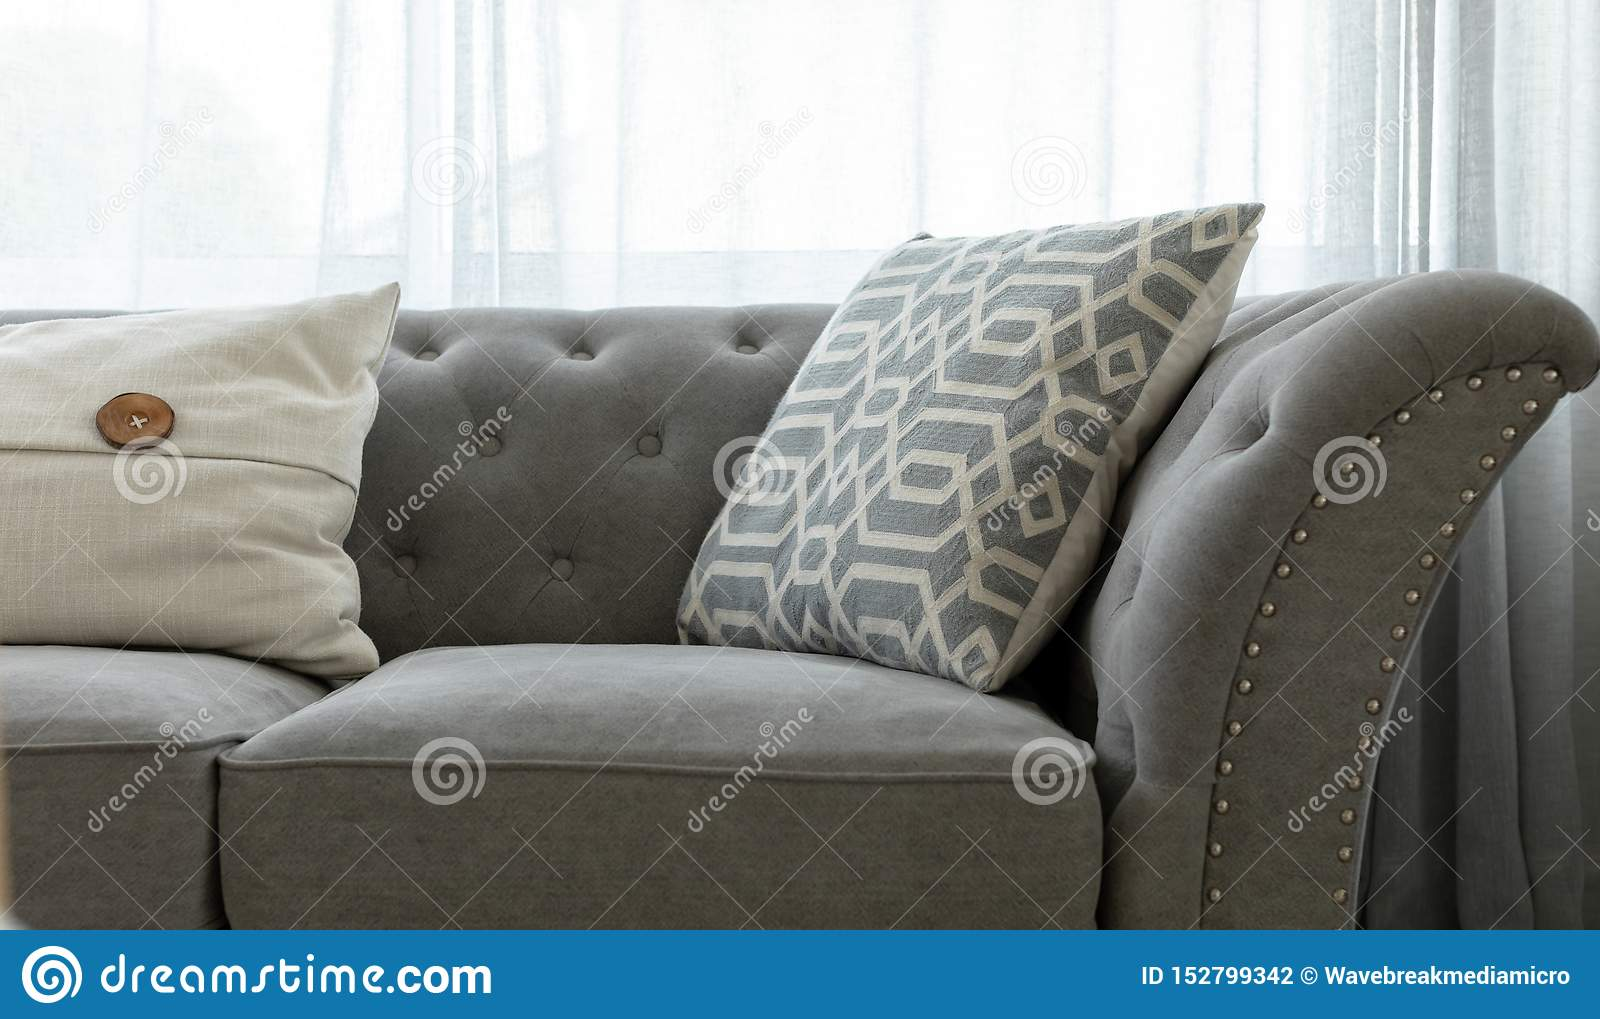 Image of: Grey Couch With Throw Pillows Stock Photo Image Of People Couch 152799342